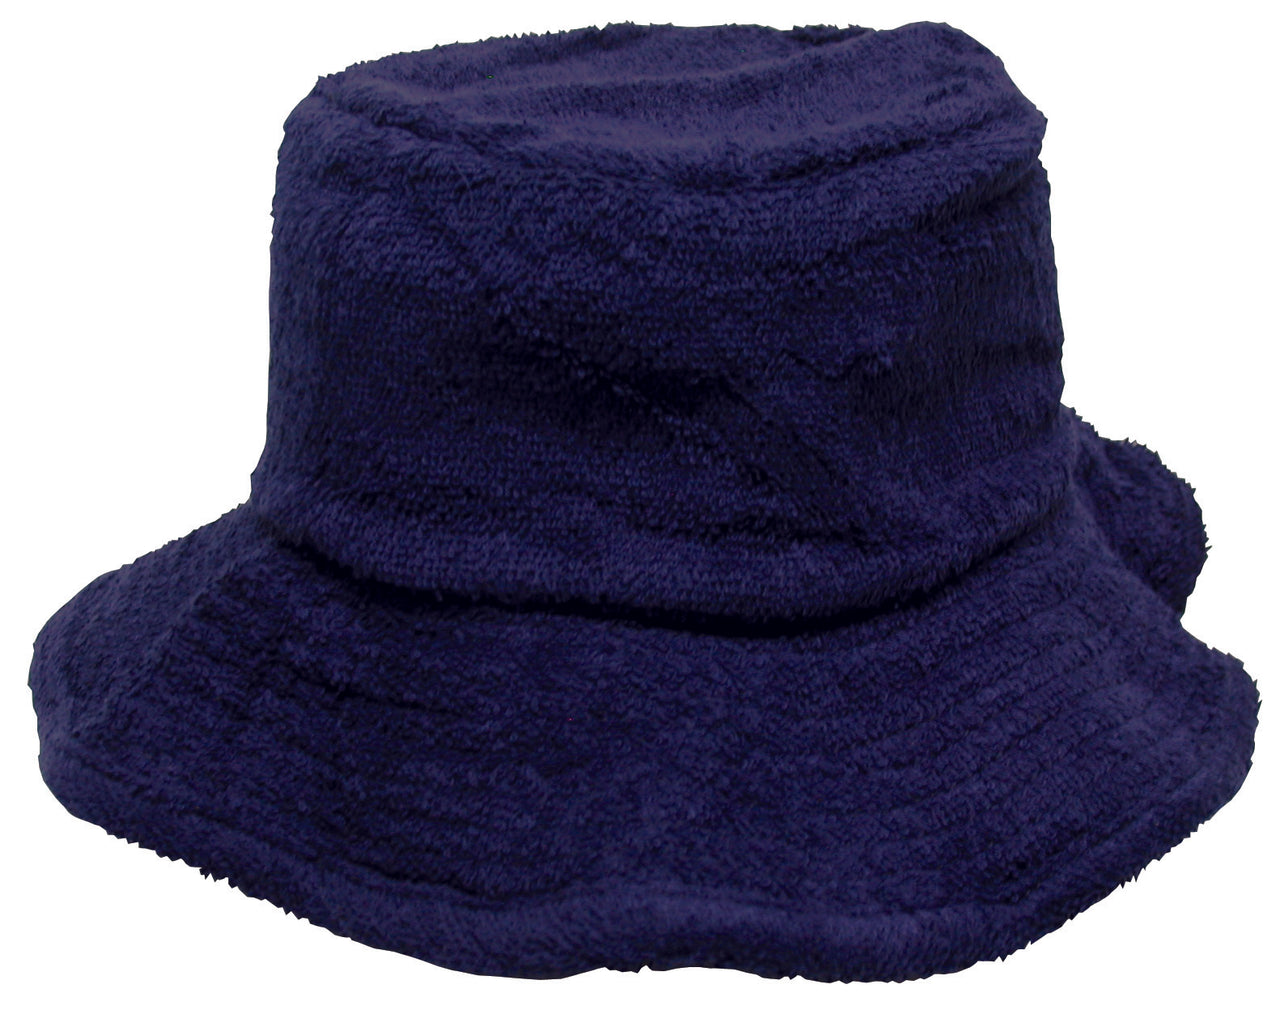 Avenel Terry-Towel Bucket Hat